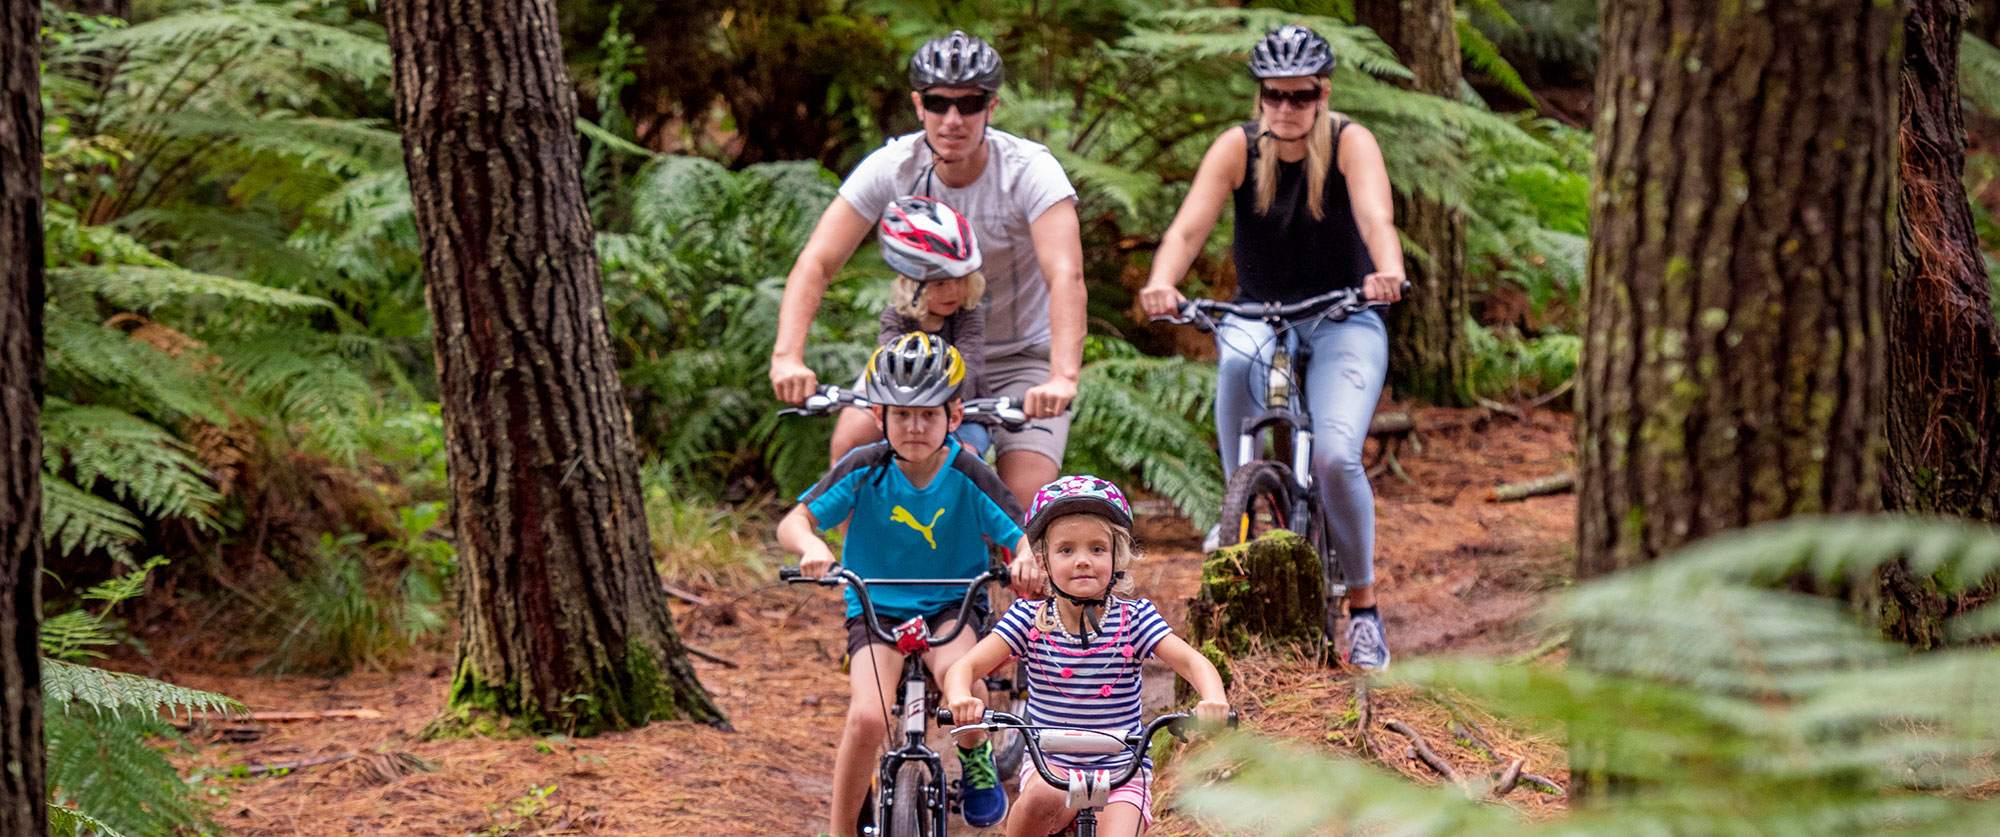 New Zealand Multigeneration Vacation: Adventure Travel